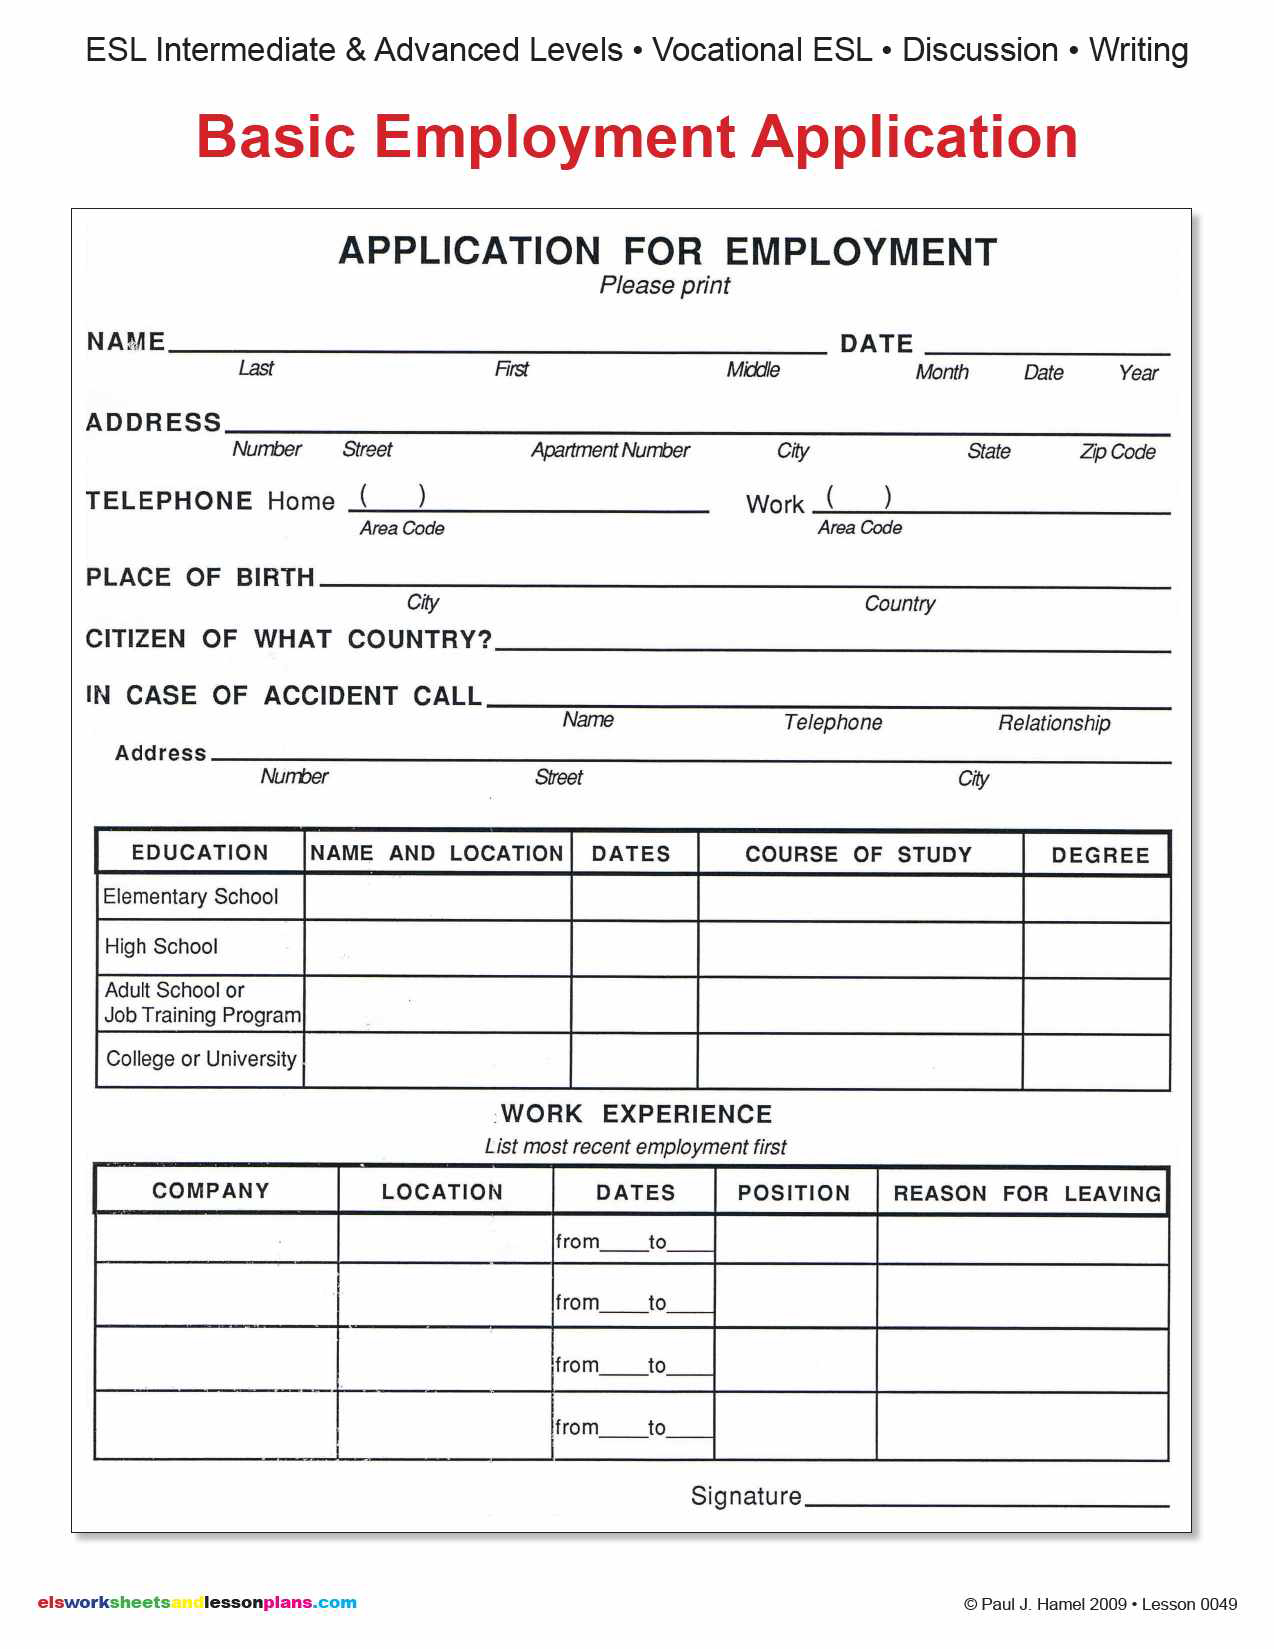 Application form in pdf